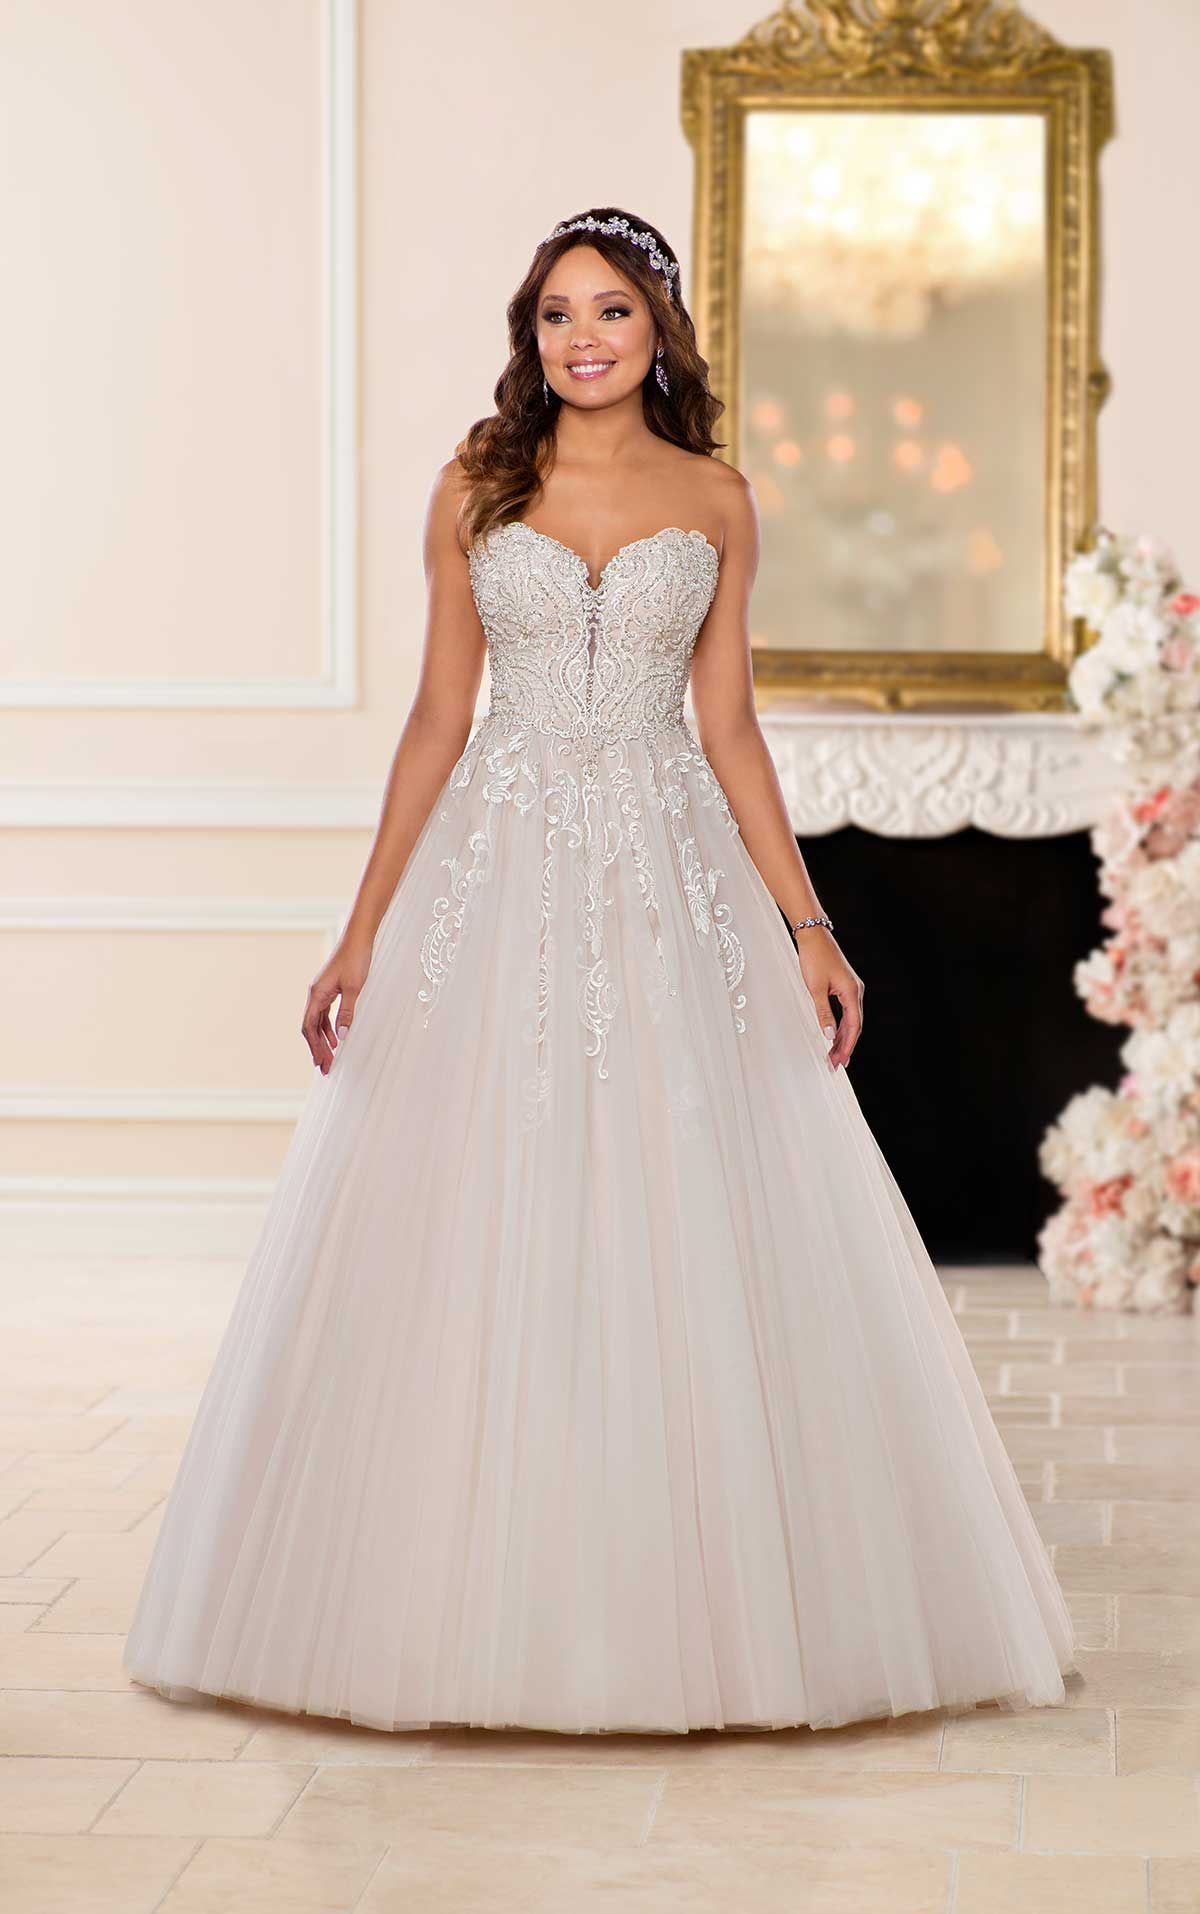 60dd520427 Plus Size Wedding Dress - Sample Size 24 - Inventory  02208